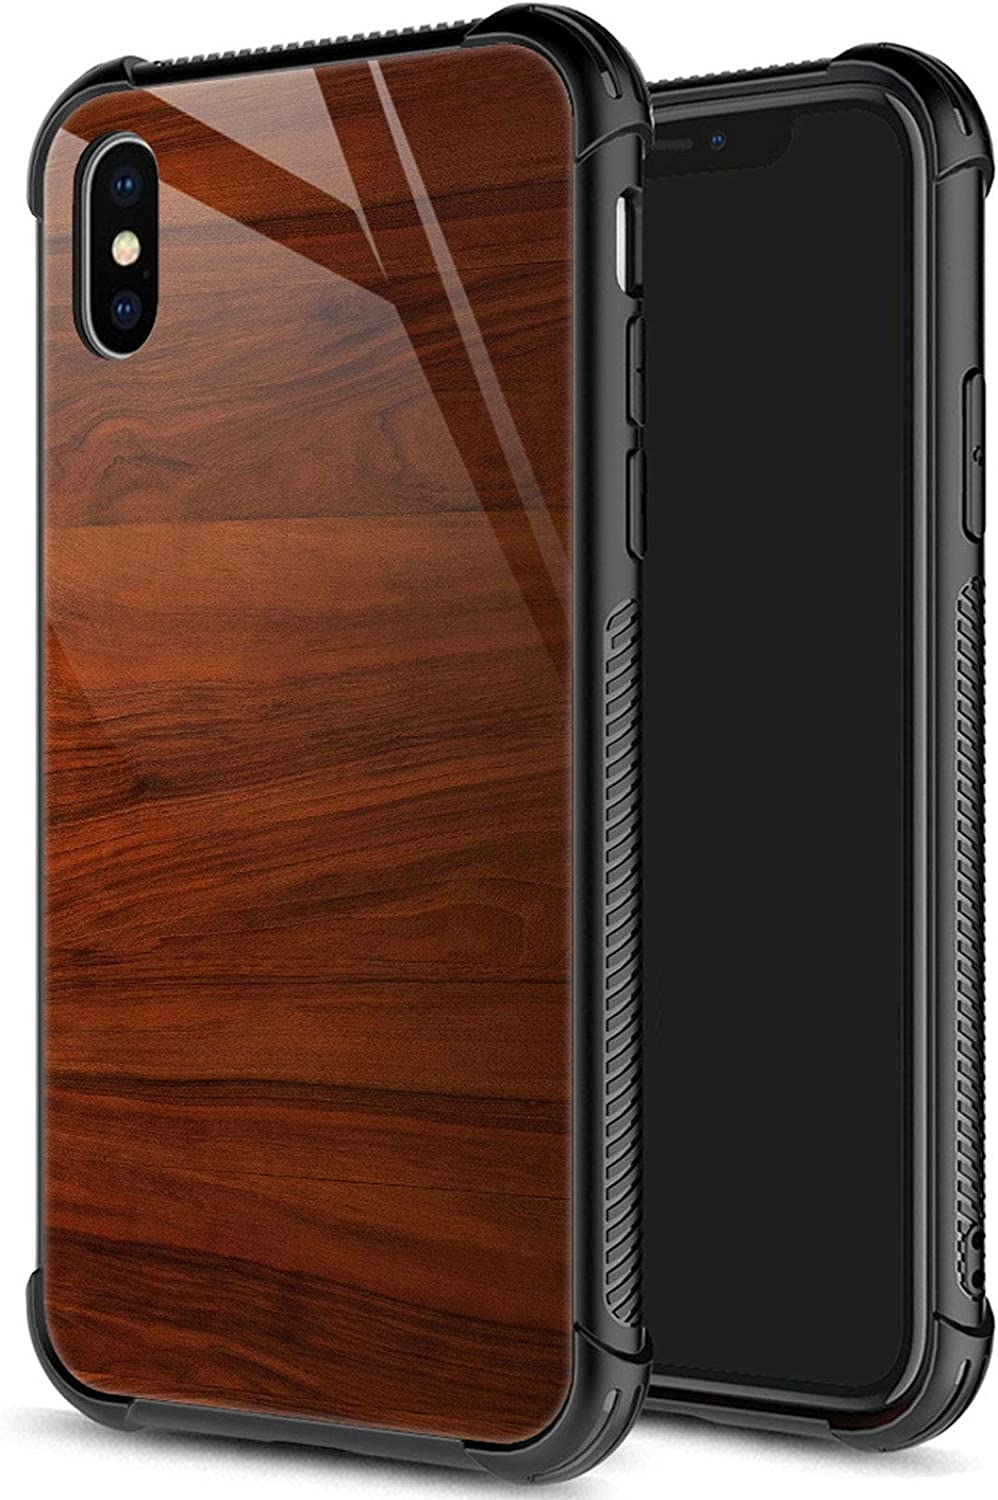 iPhone XR Case, Wood Grain iPhone XR Cases for Men Boys, Pattern Design Shockproof Anti-Scratch Organic Glass Case for Apple iPhone XR 6.1-inch Wood Grain